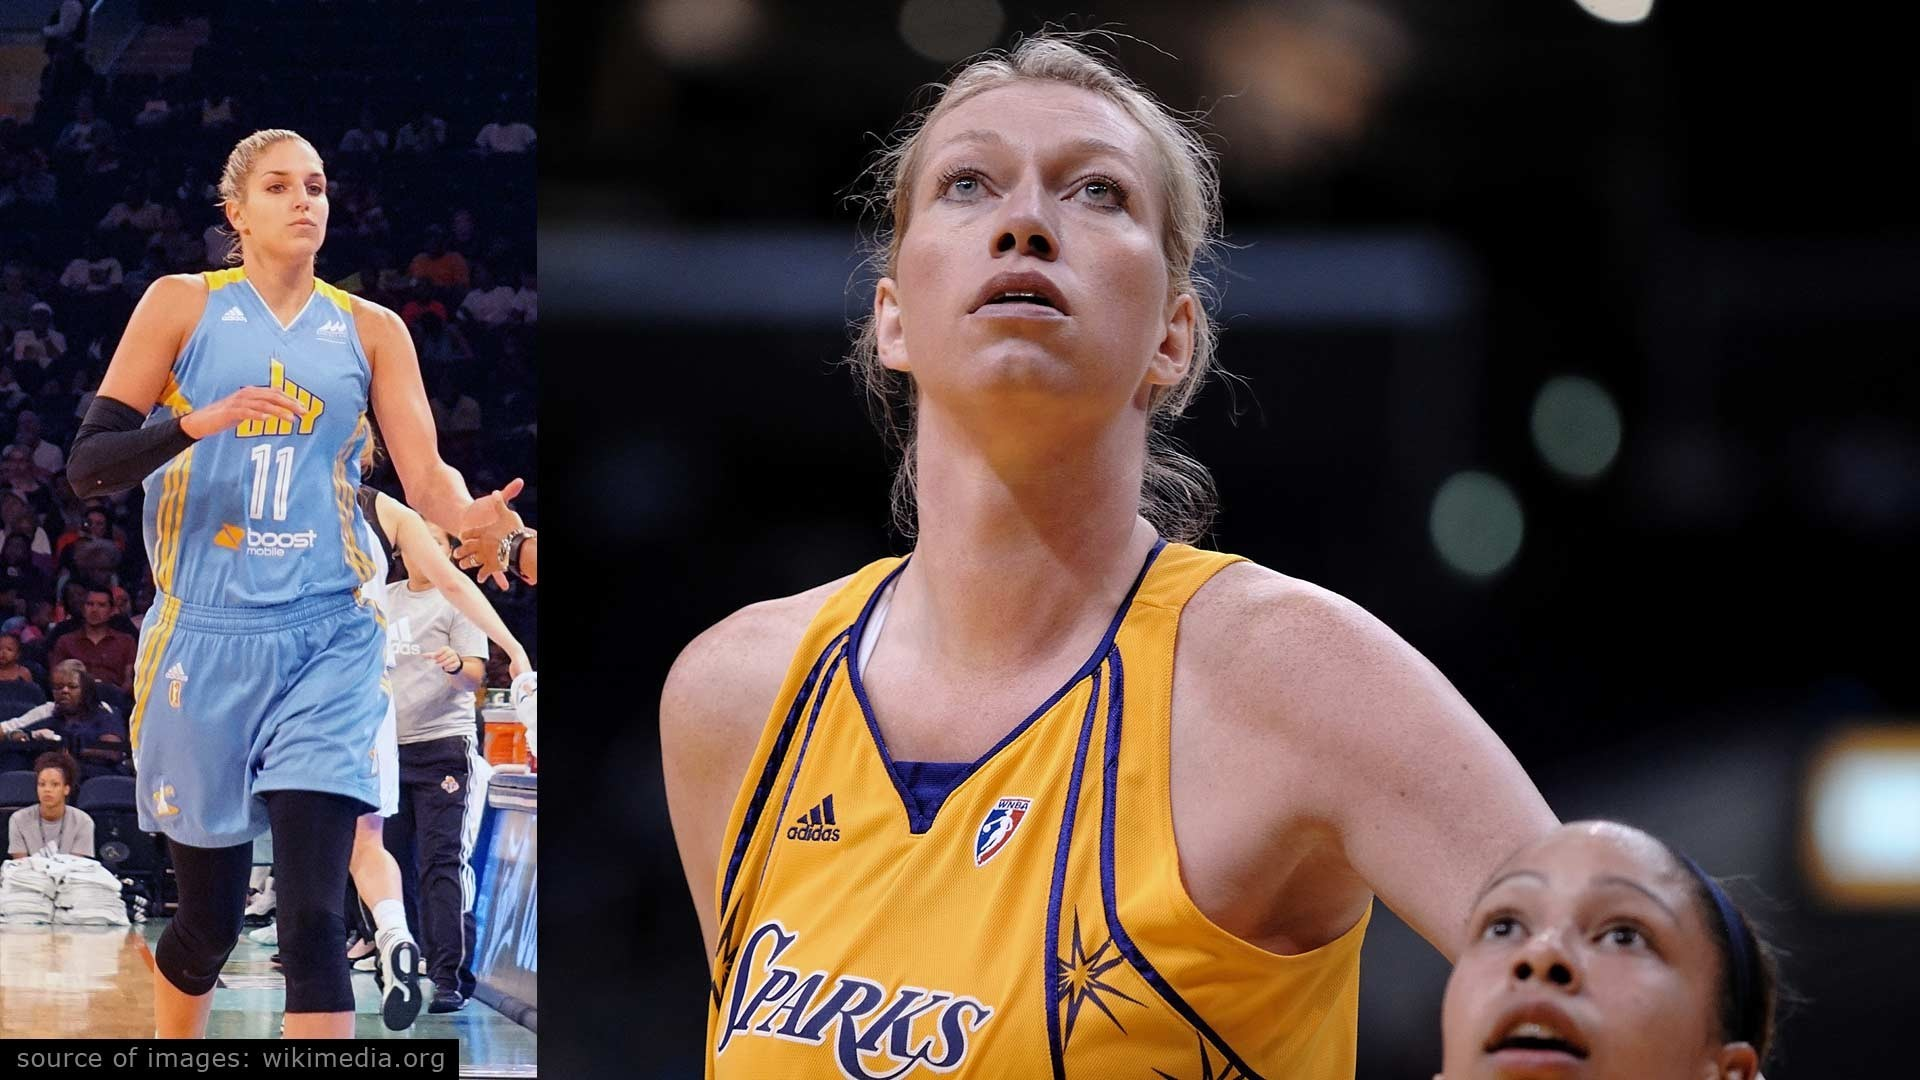 Tallest Female Basketball Players